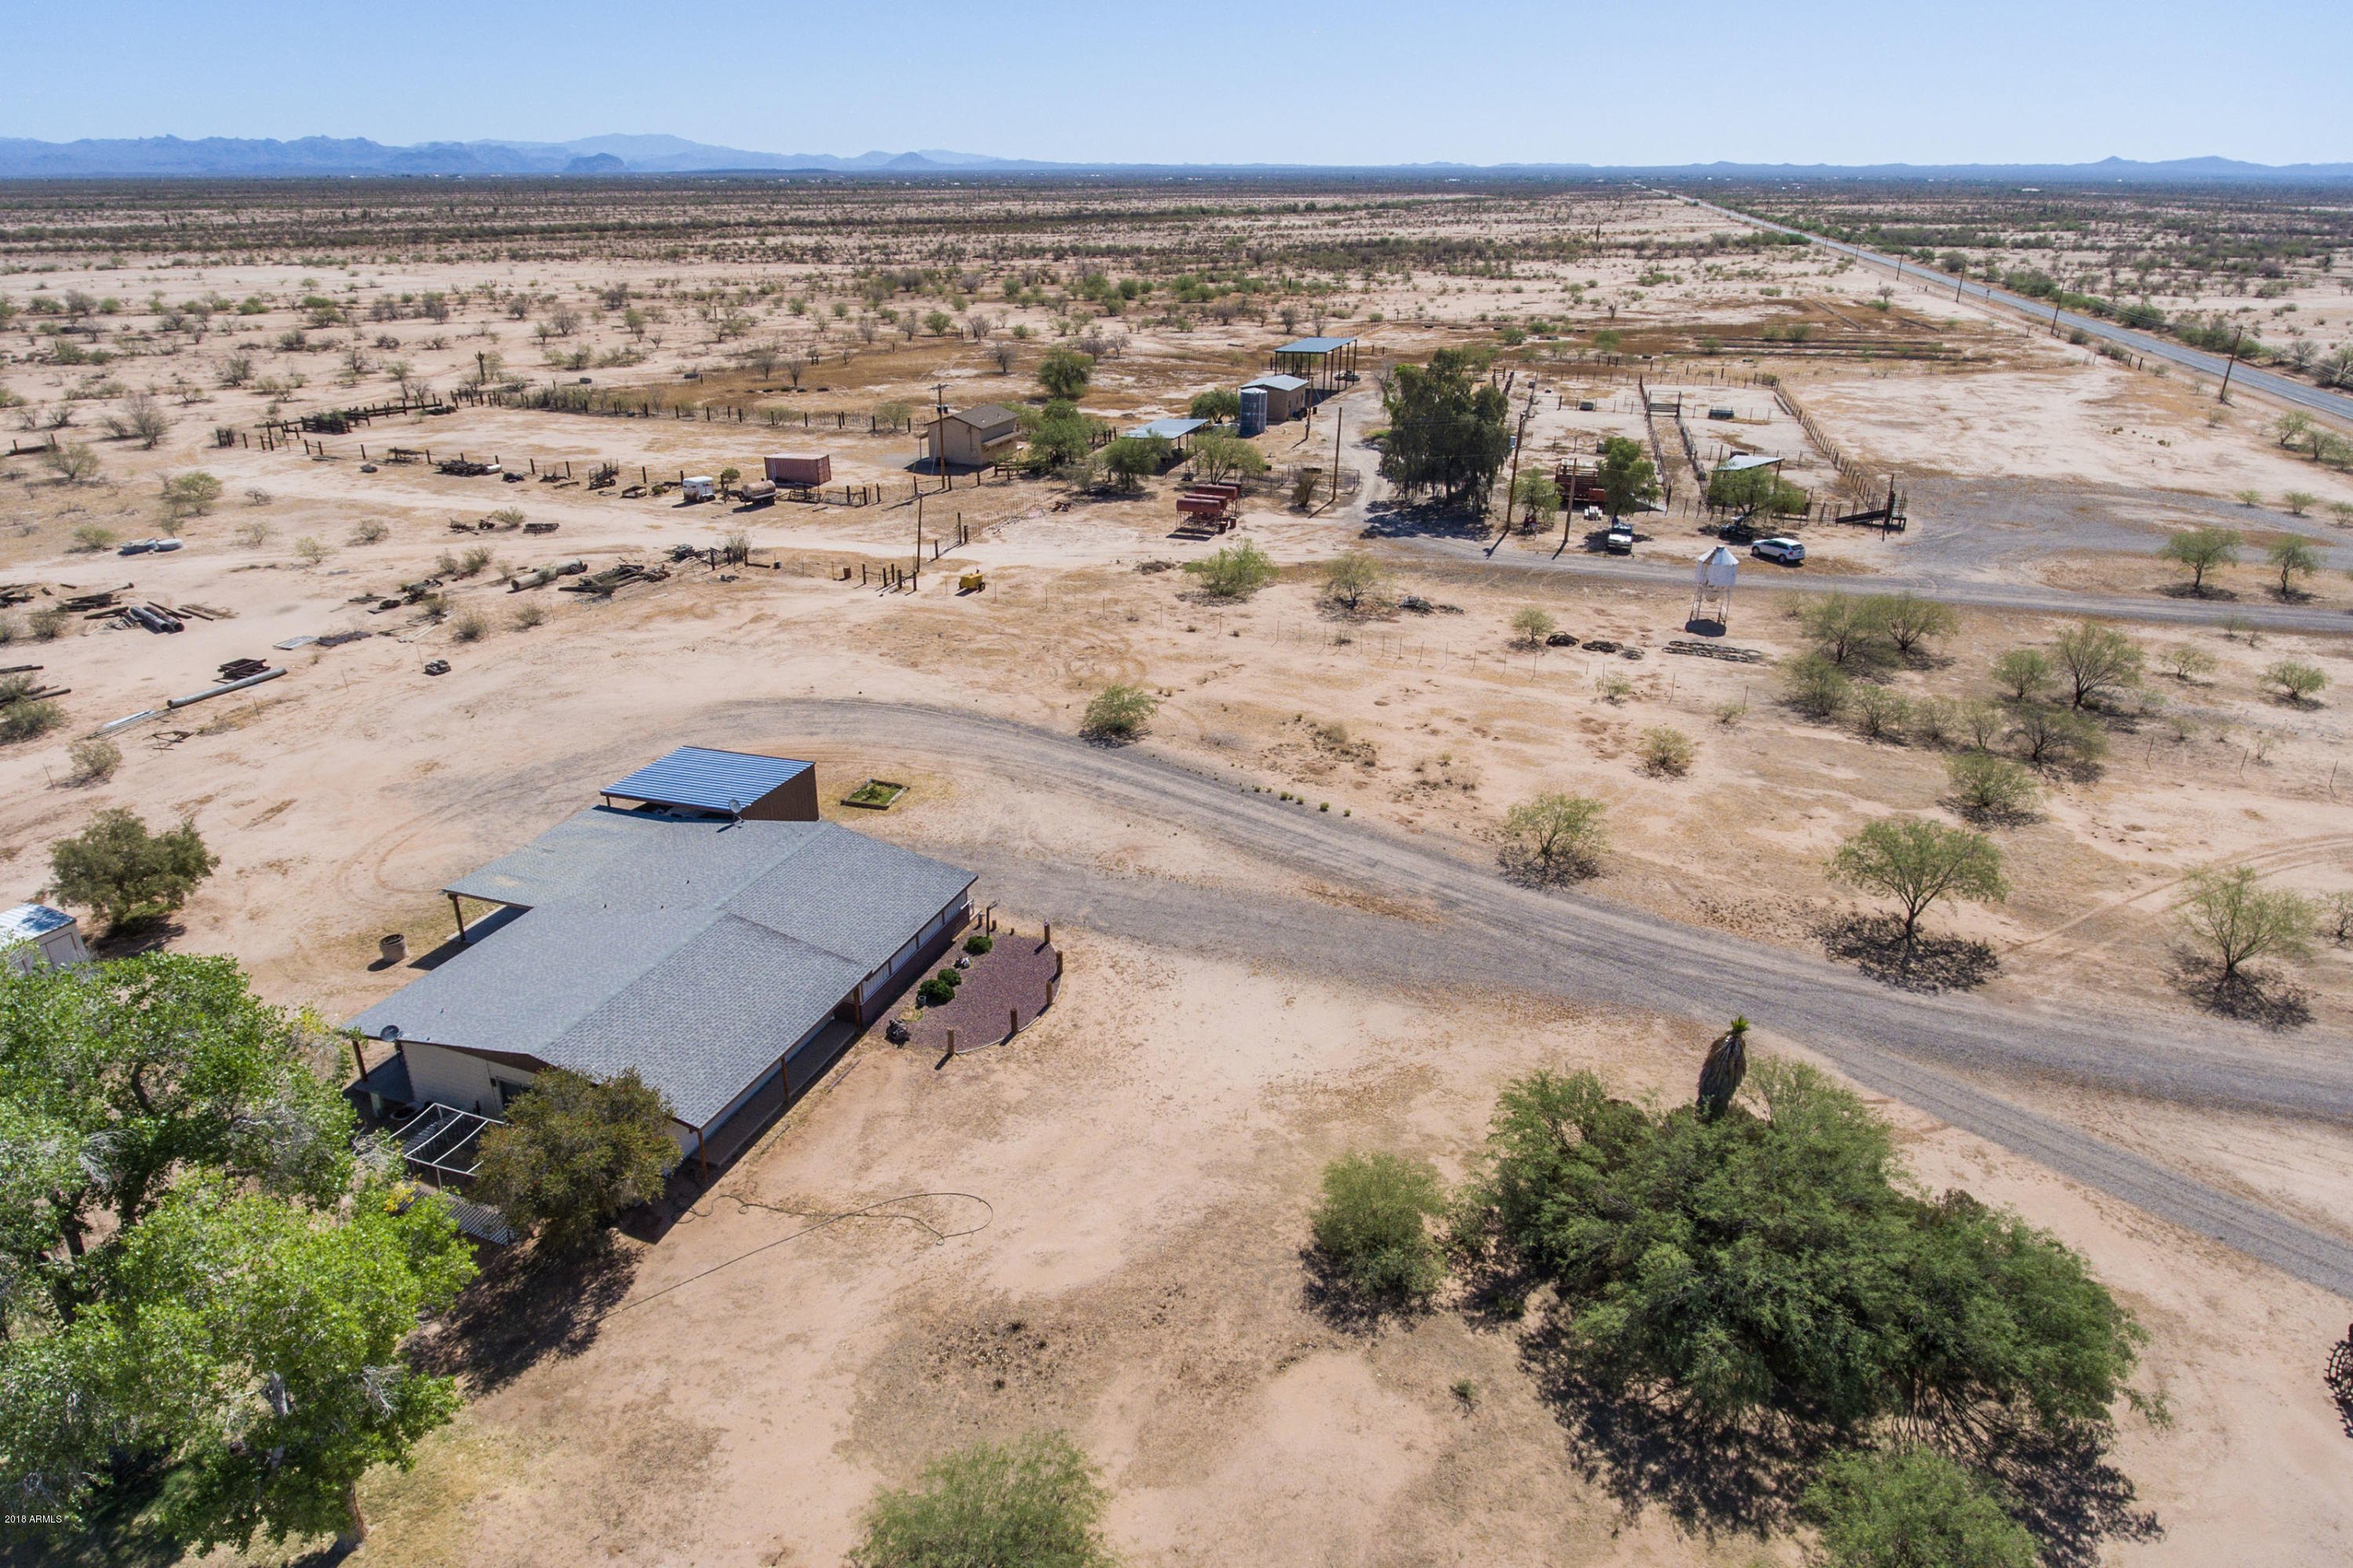 MLS 5737194 16016 E CACTUS FOREST Road, Florence, AZ 85132 Florence AZ Luxury